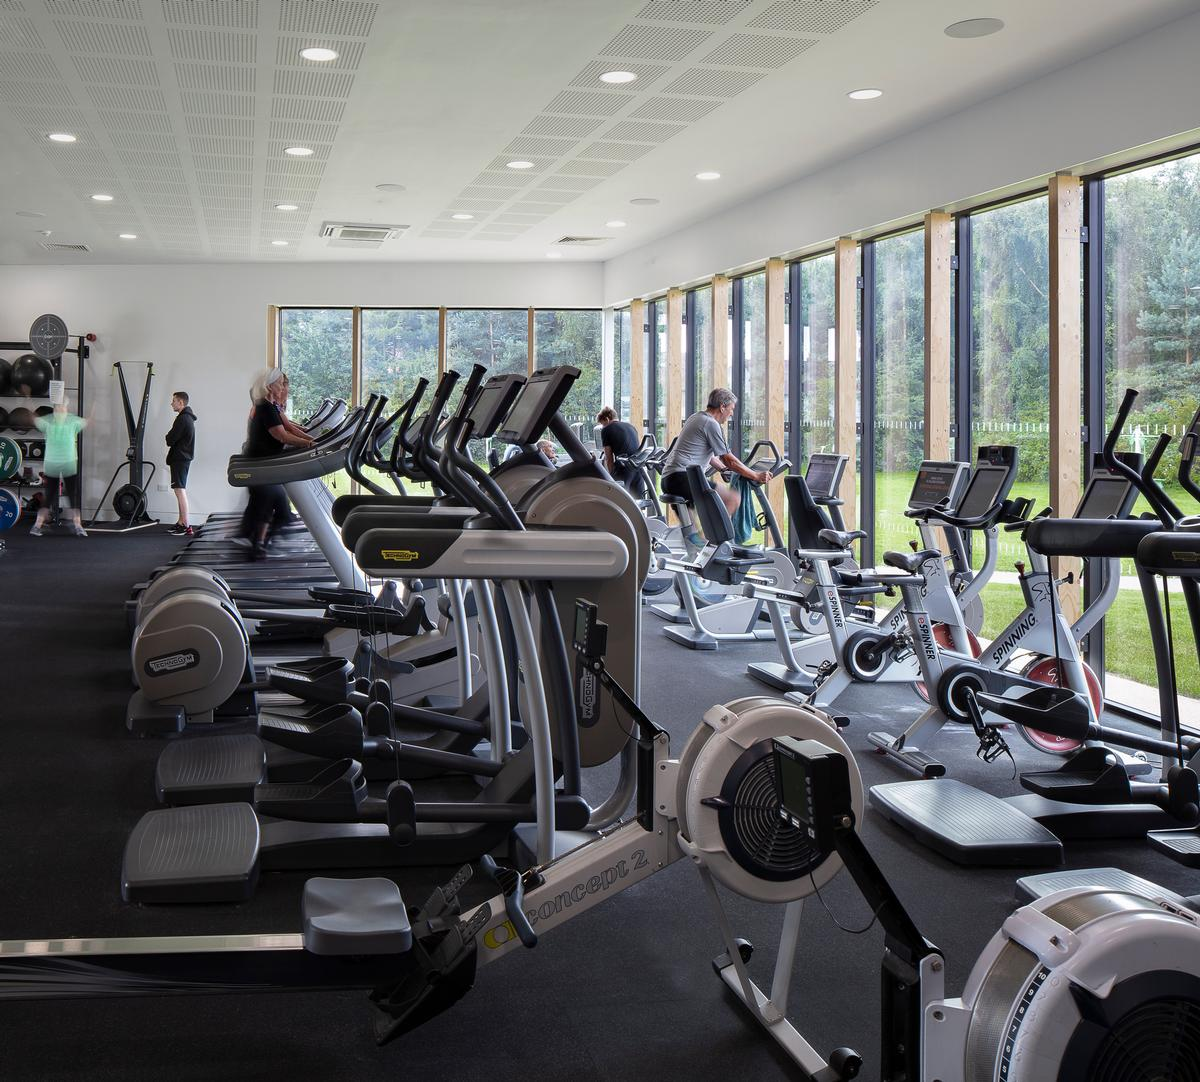 Pozzoni added a 60-person fitness suite and converted the original fitness suite into a multi-purpose studio / Tamara Shiner